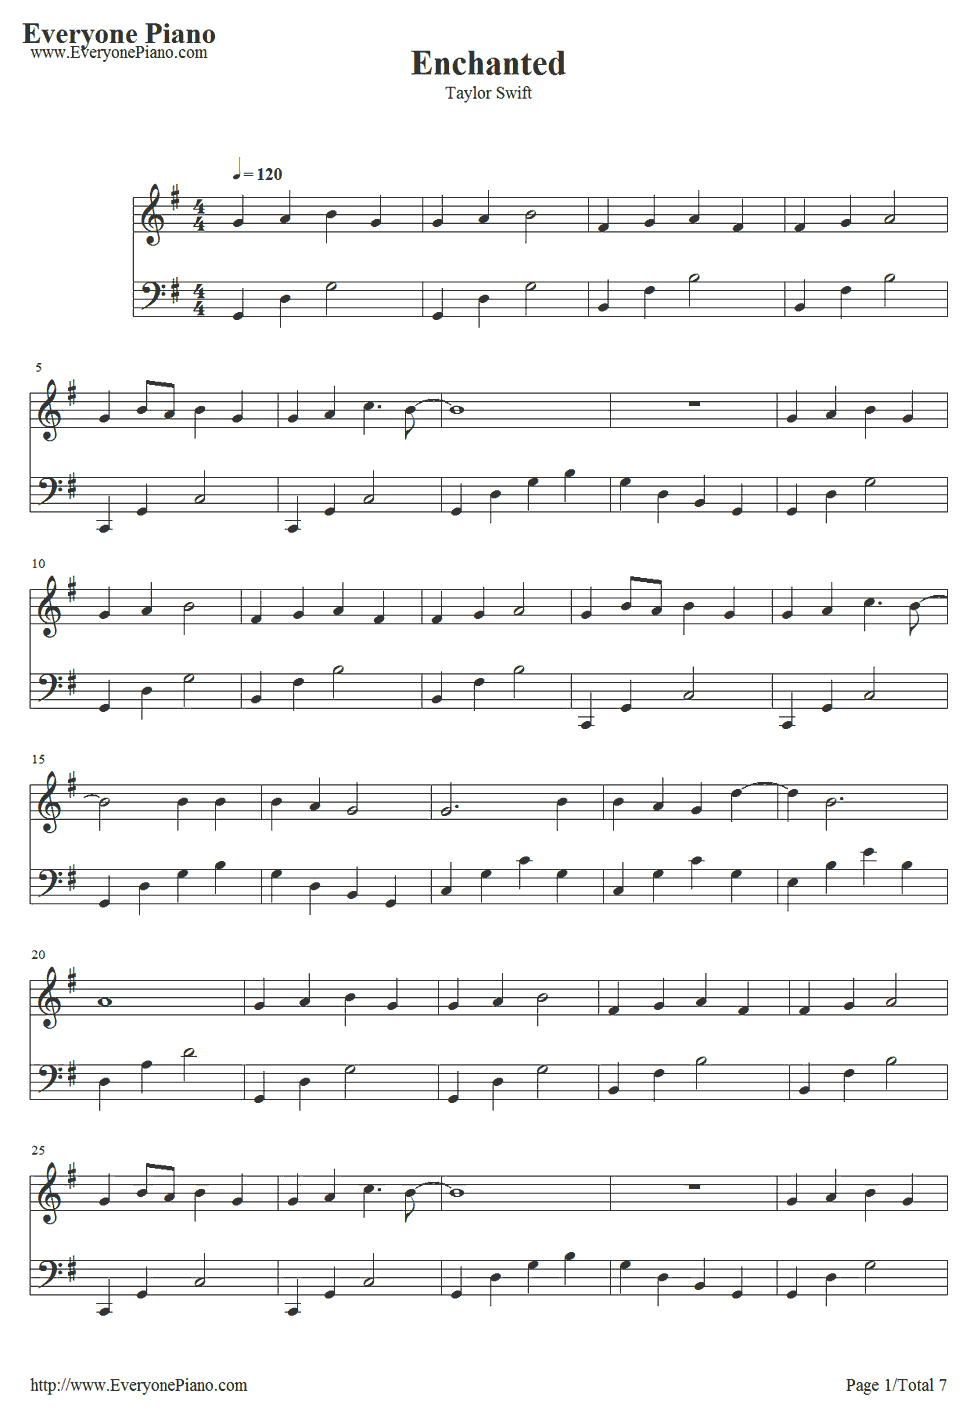 Enchanted-Taylor Swift Stave Preview 1 | Piano Pieces In 2019 - Taylor Swift Mine Piano Sheet Music Free Printable